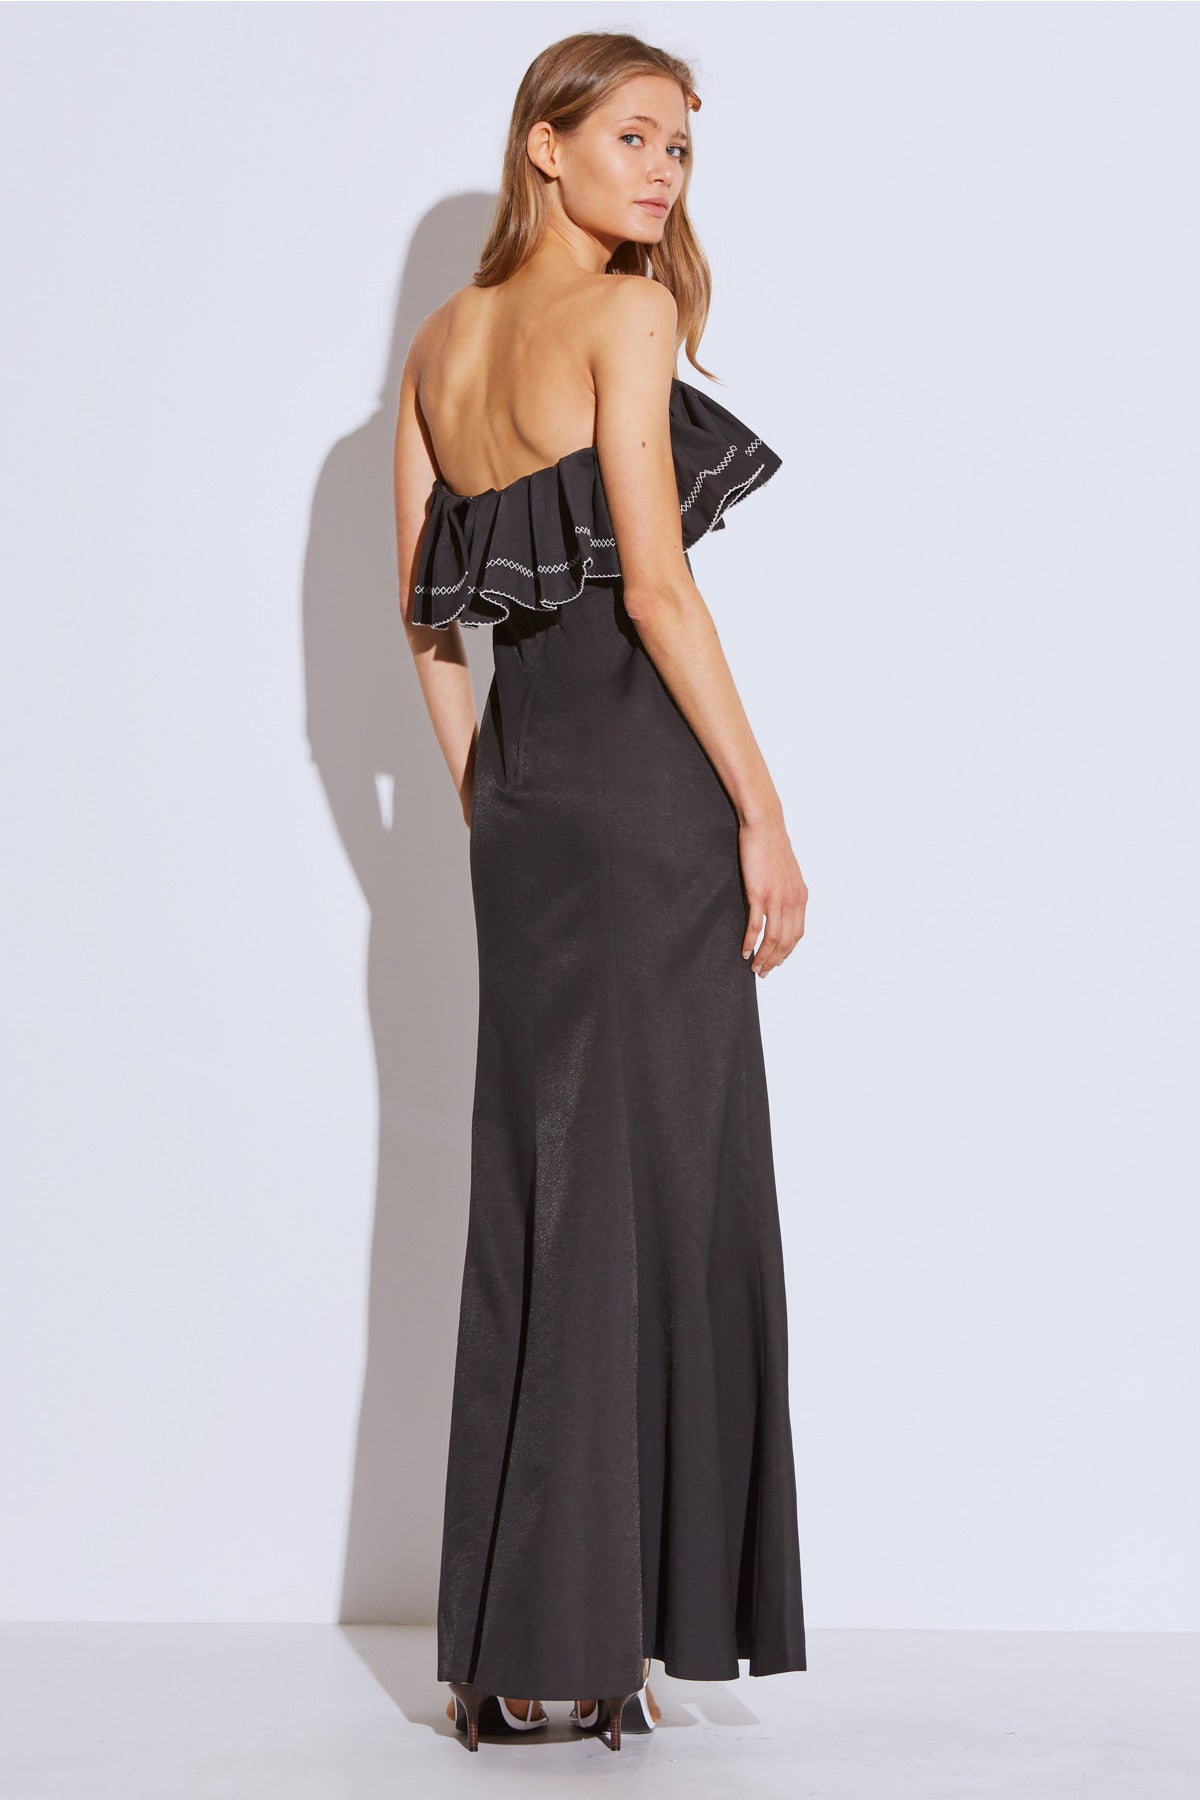 AFFINITY GOWN black